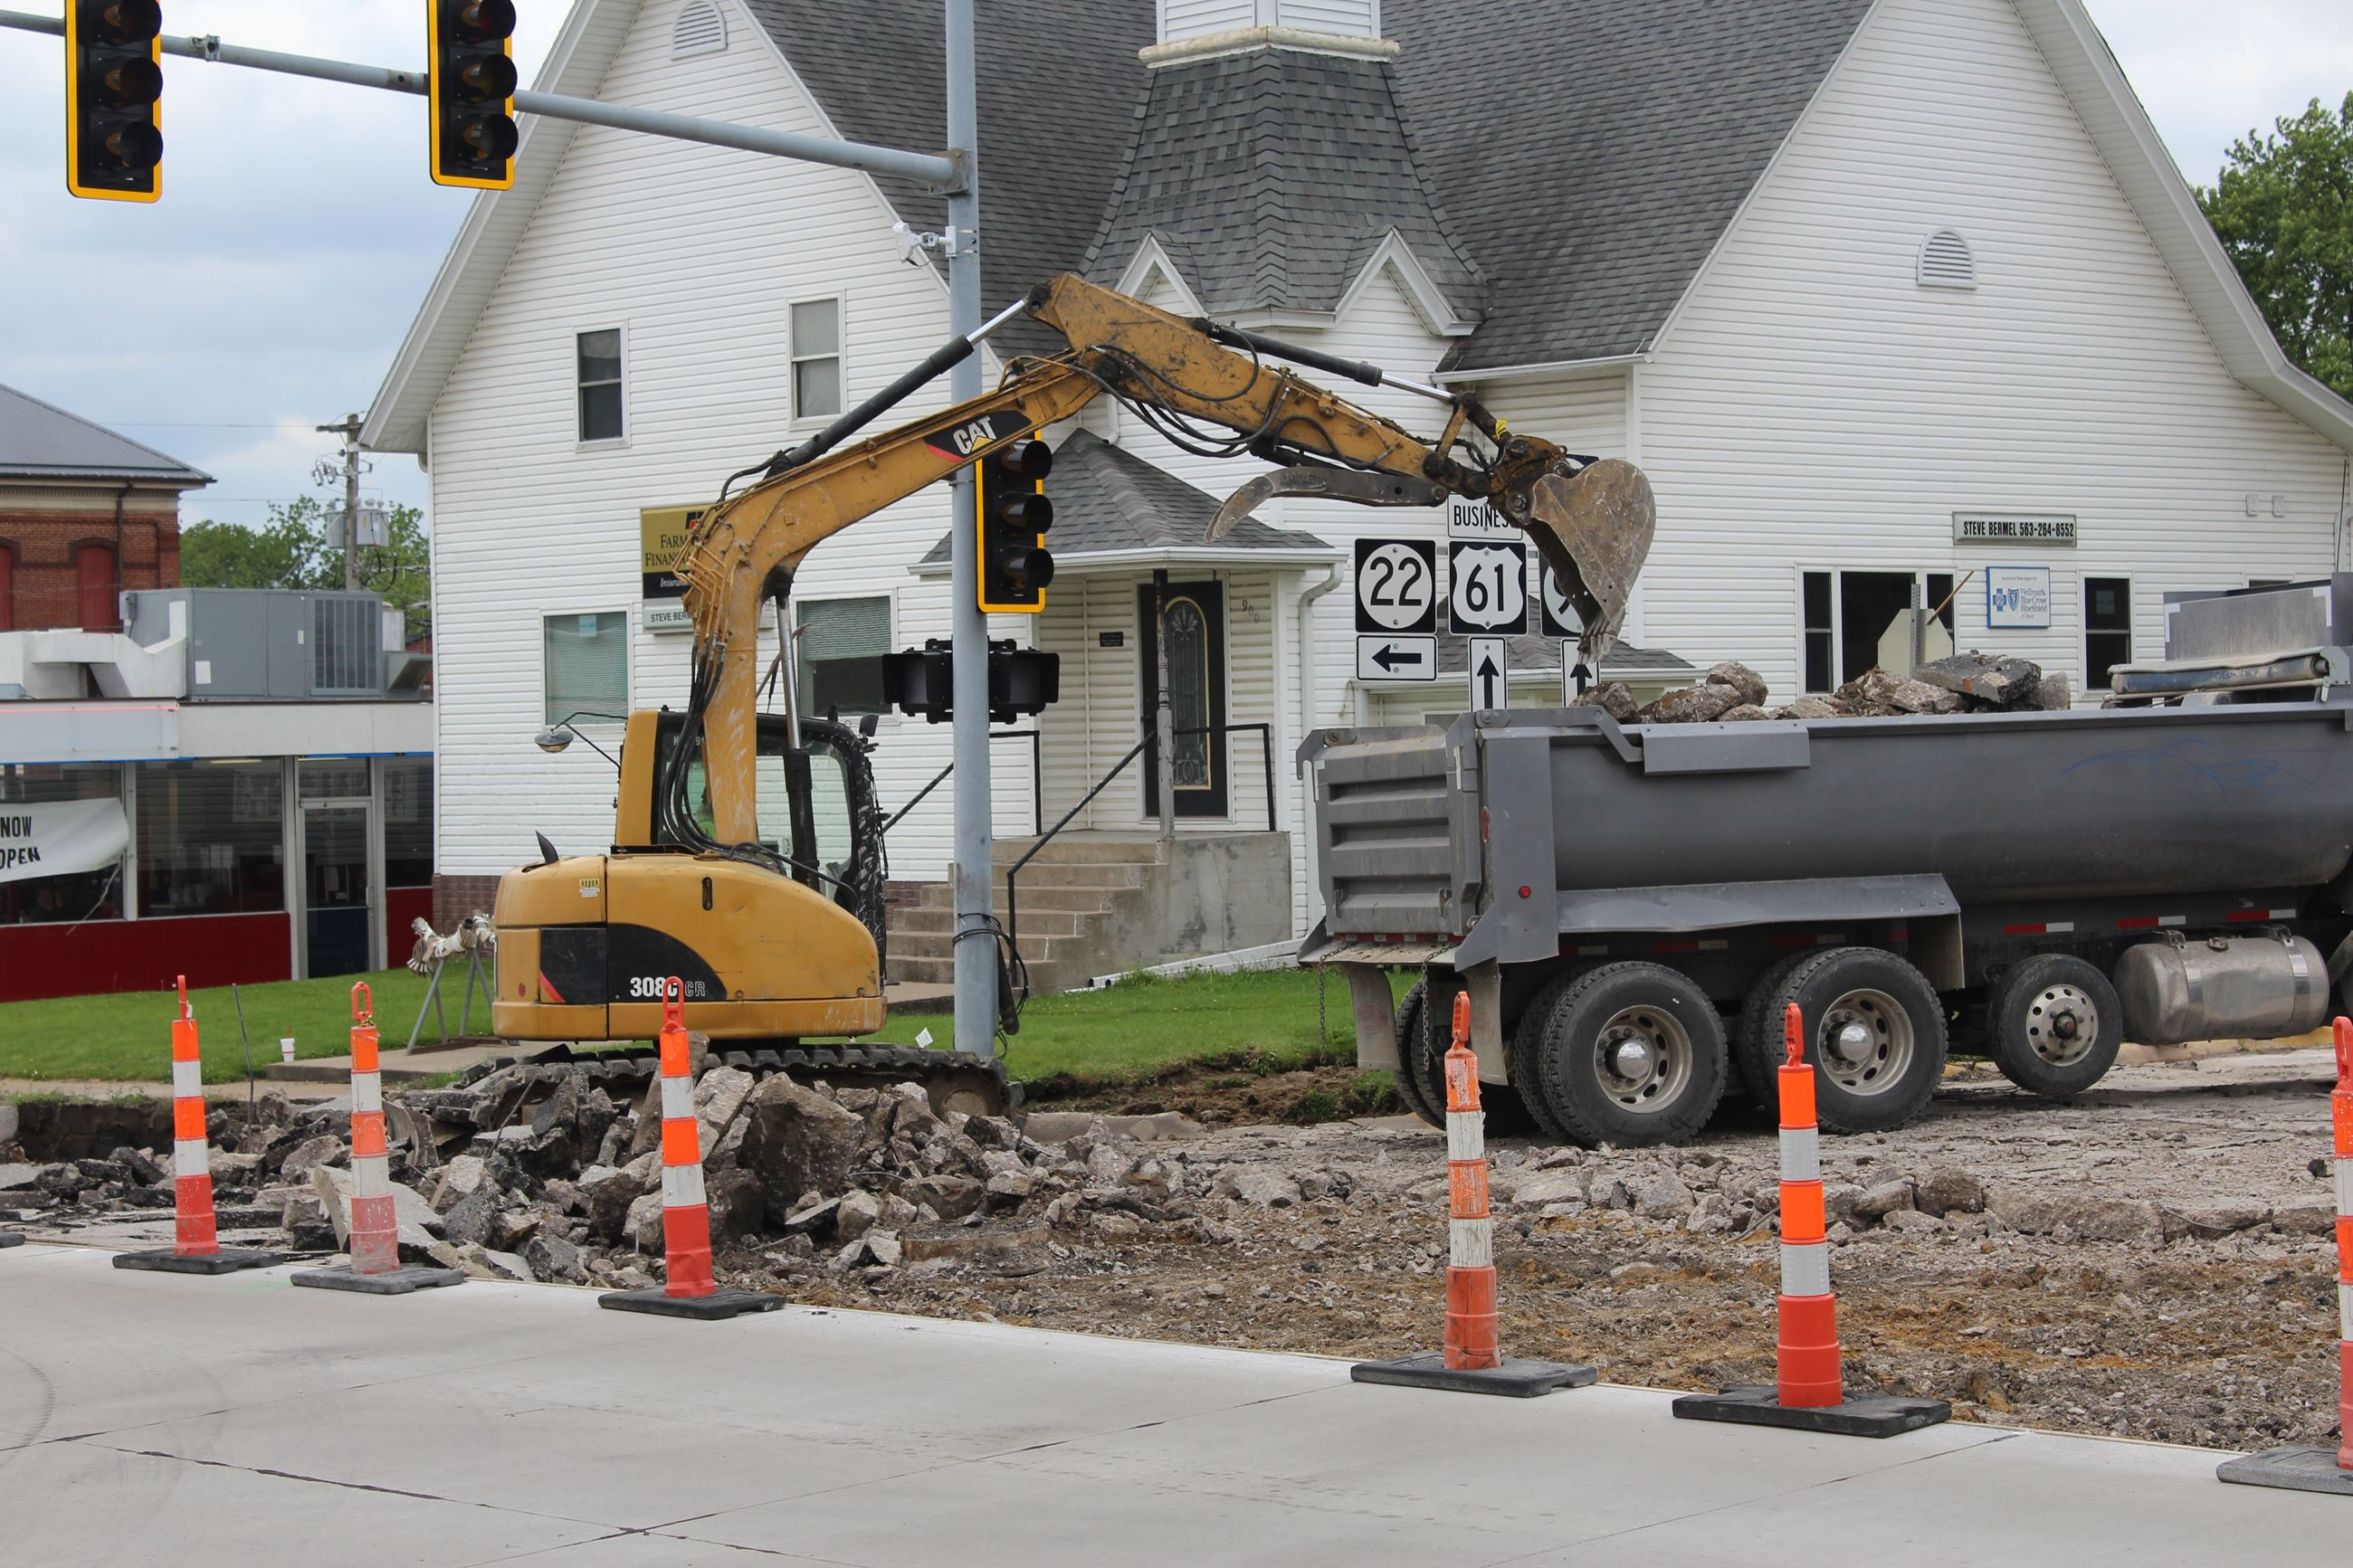 052021 Park Avenue - Washington intersection west side removal 001 (JPG)